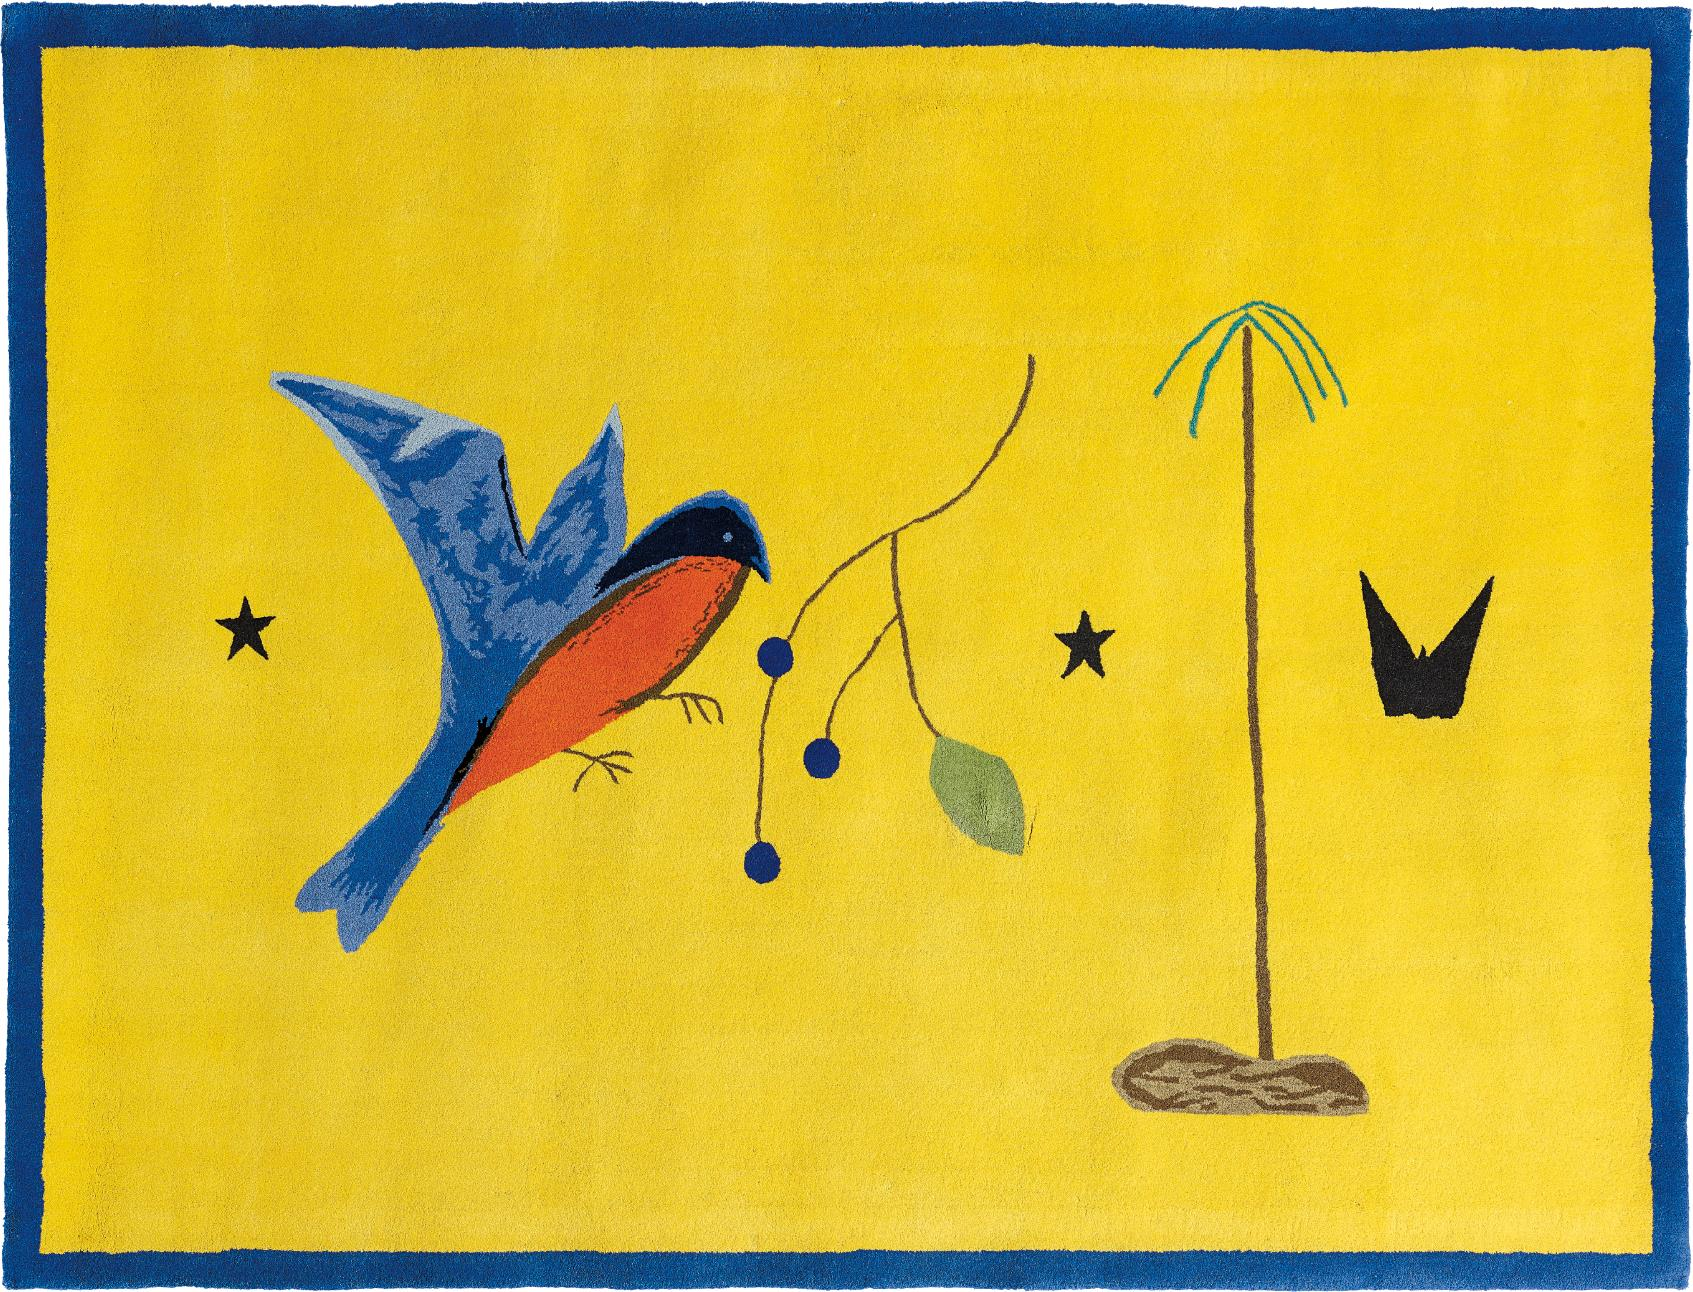 Craigie Aitchison-Blue Bird Yellow Landscape-2009